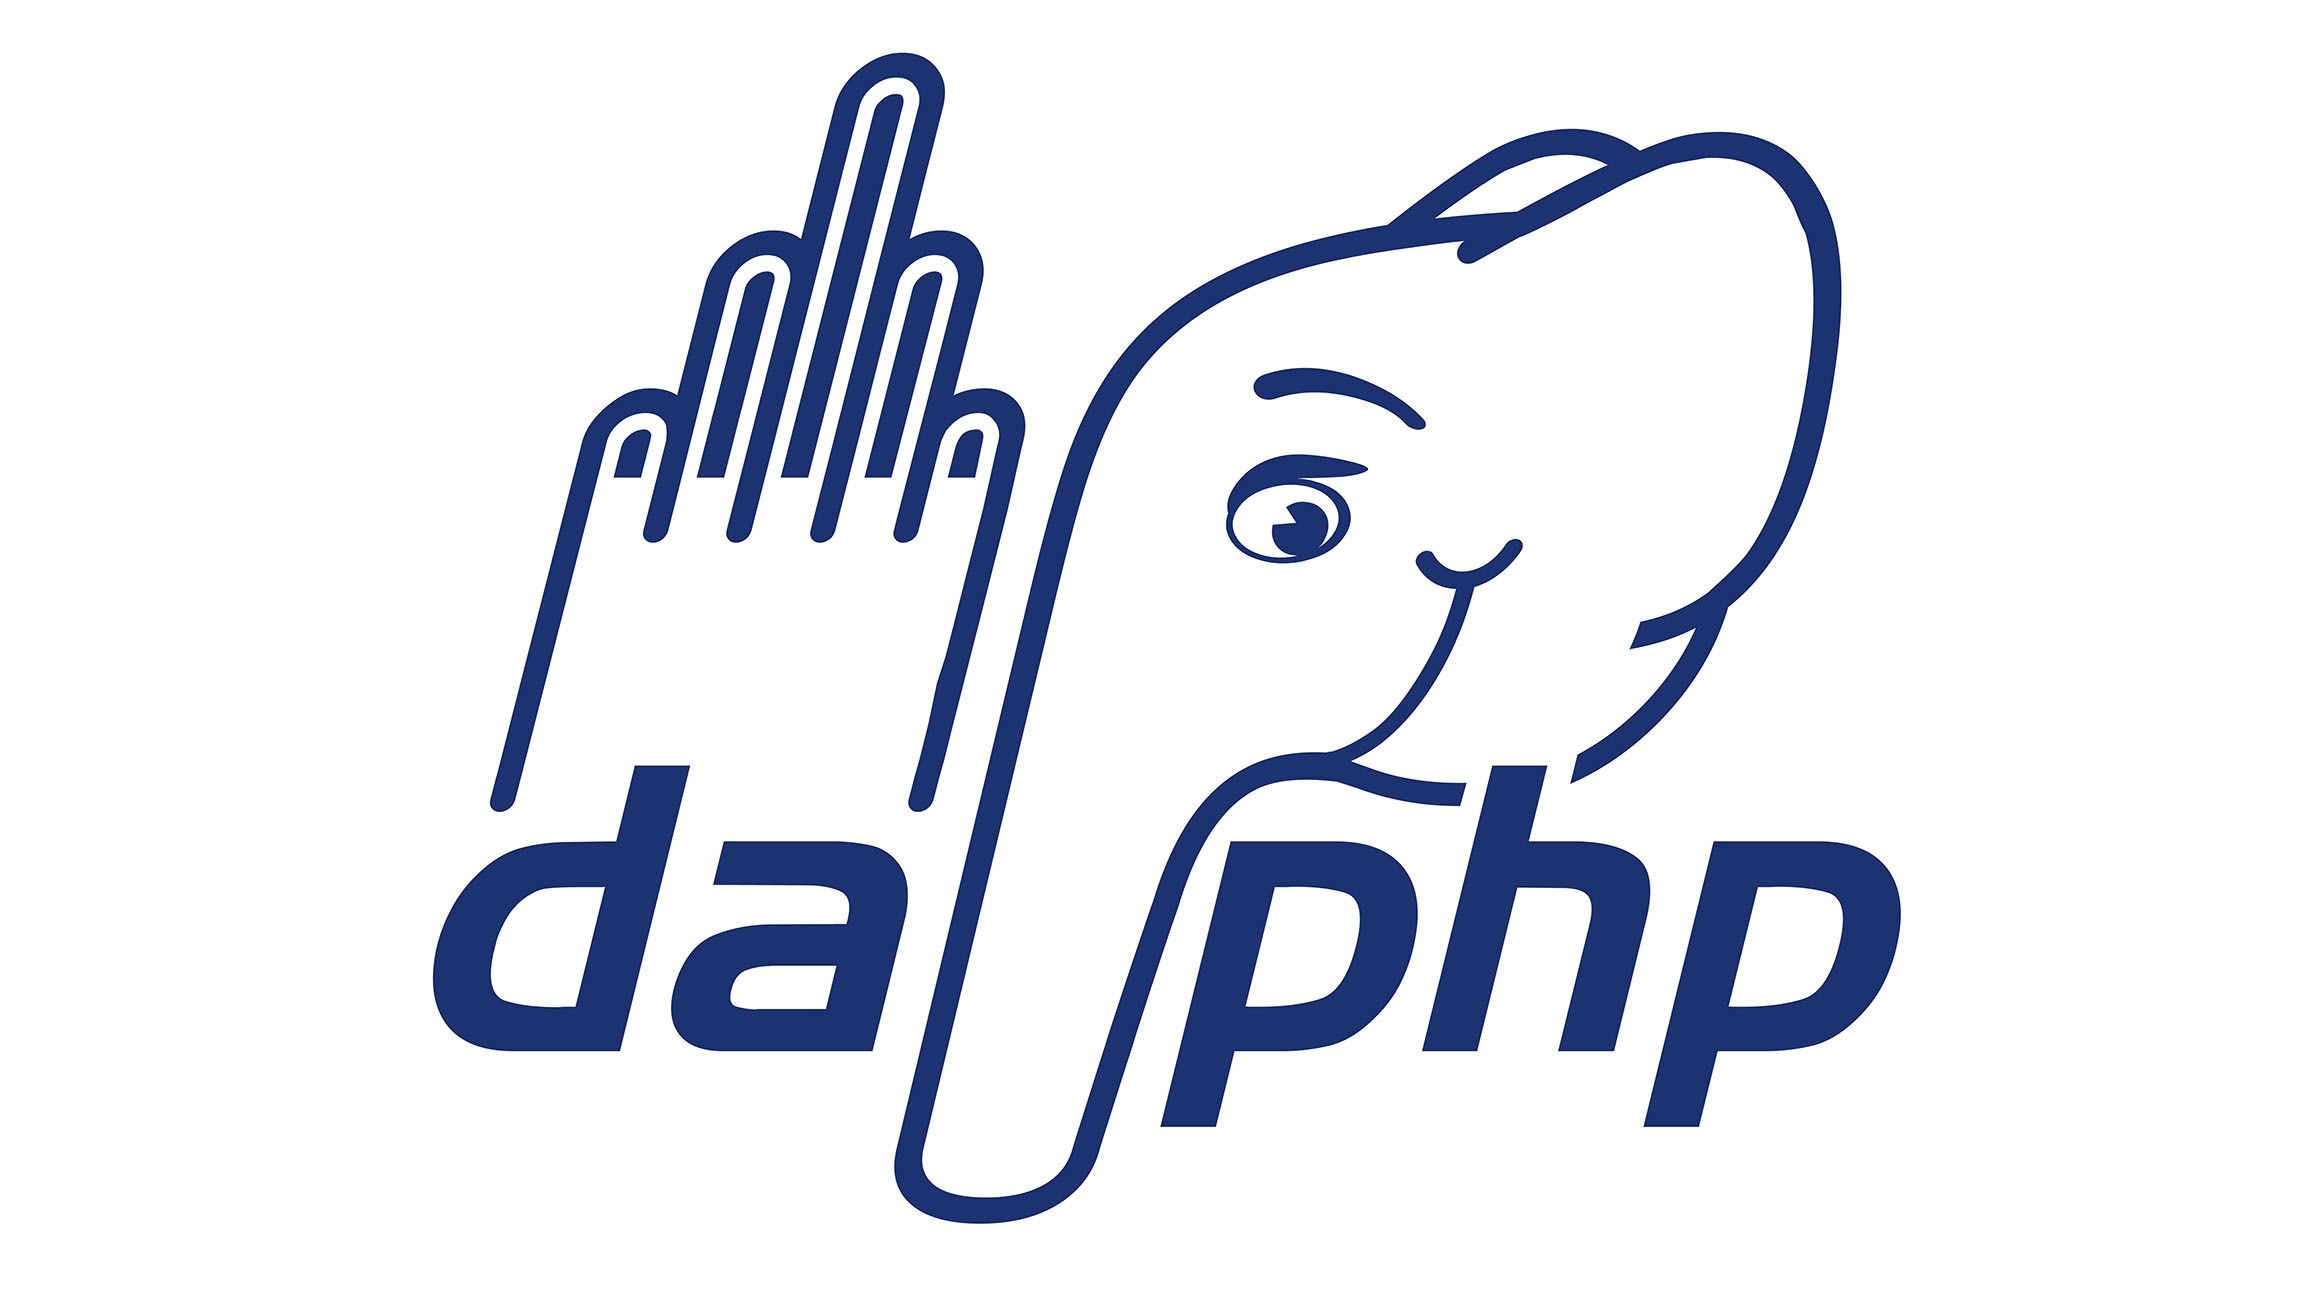 Darmstadt PHP Meetup Gruppe